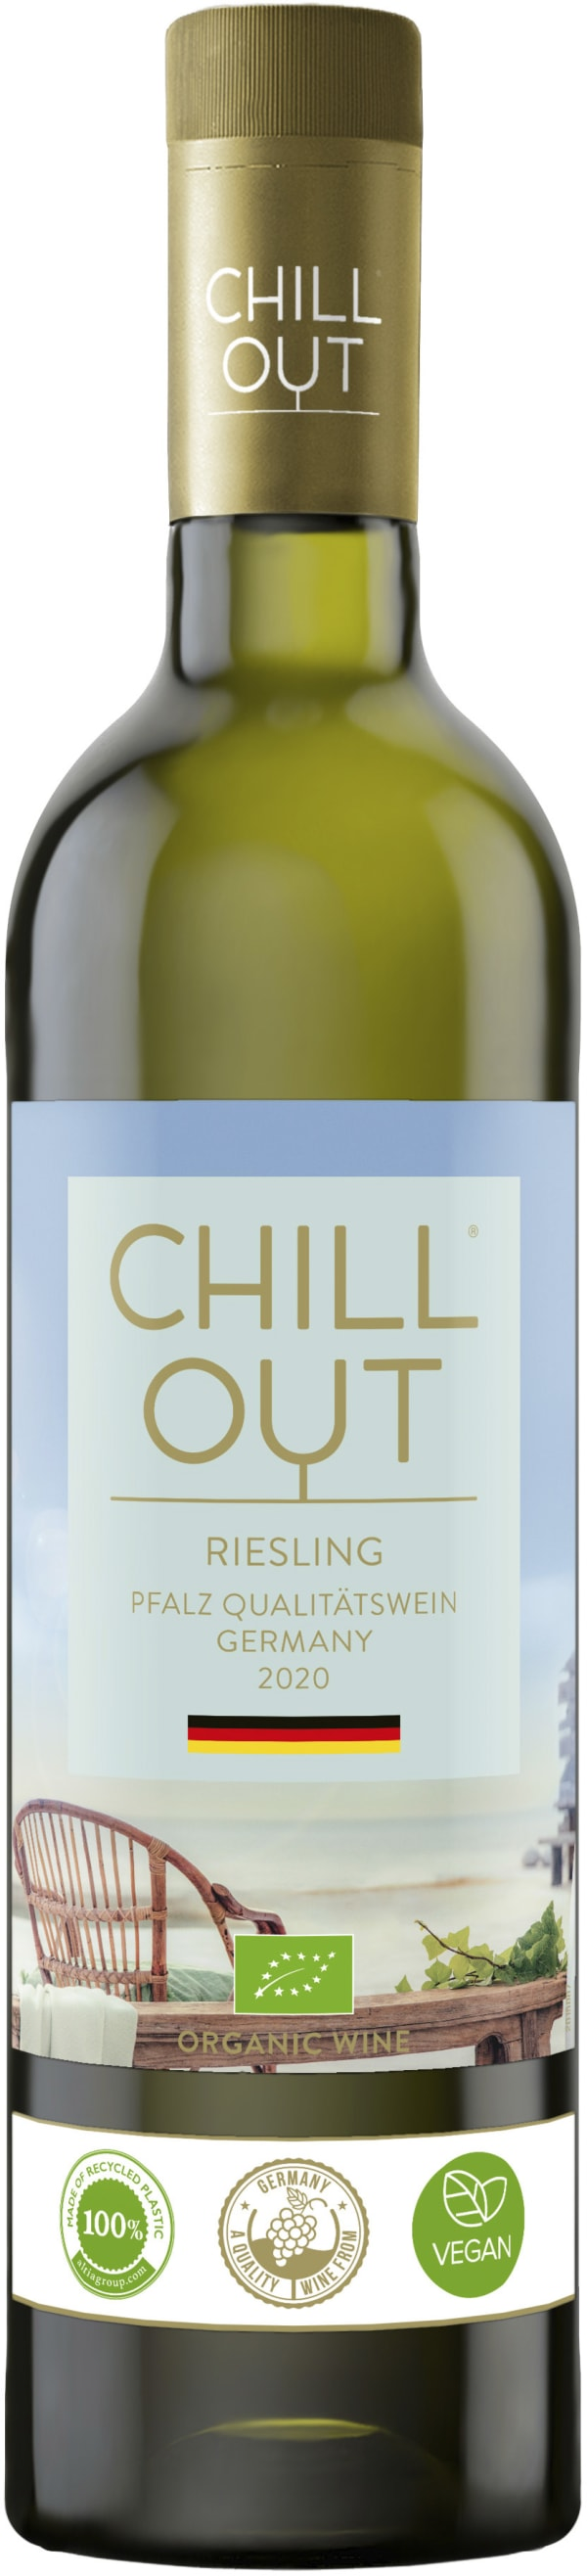 Chill Out Crisp & Fruity Riesling Organic 2015 plastic bottle